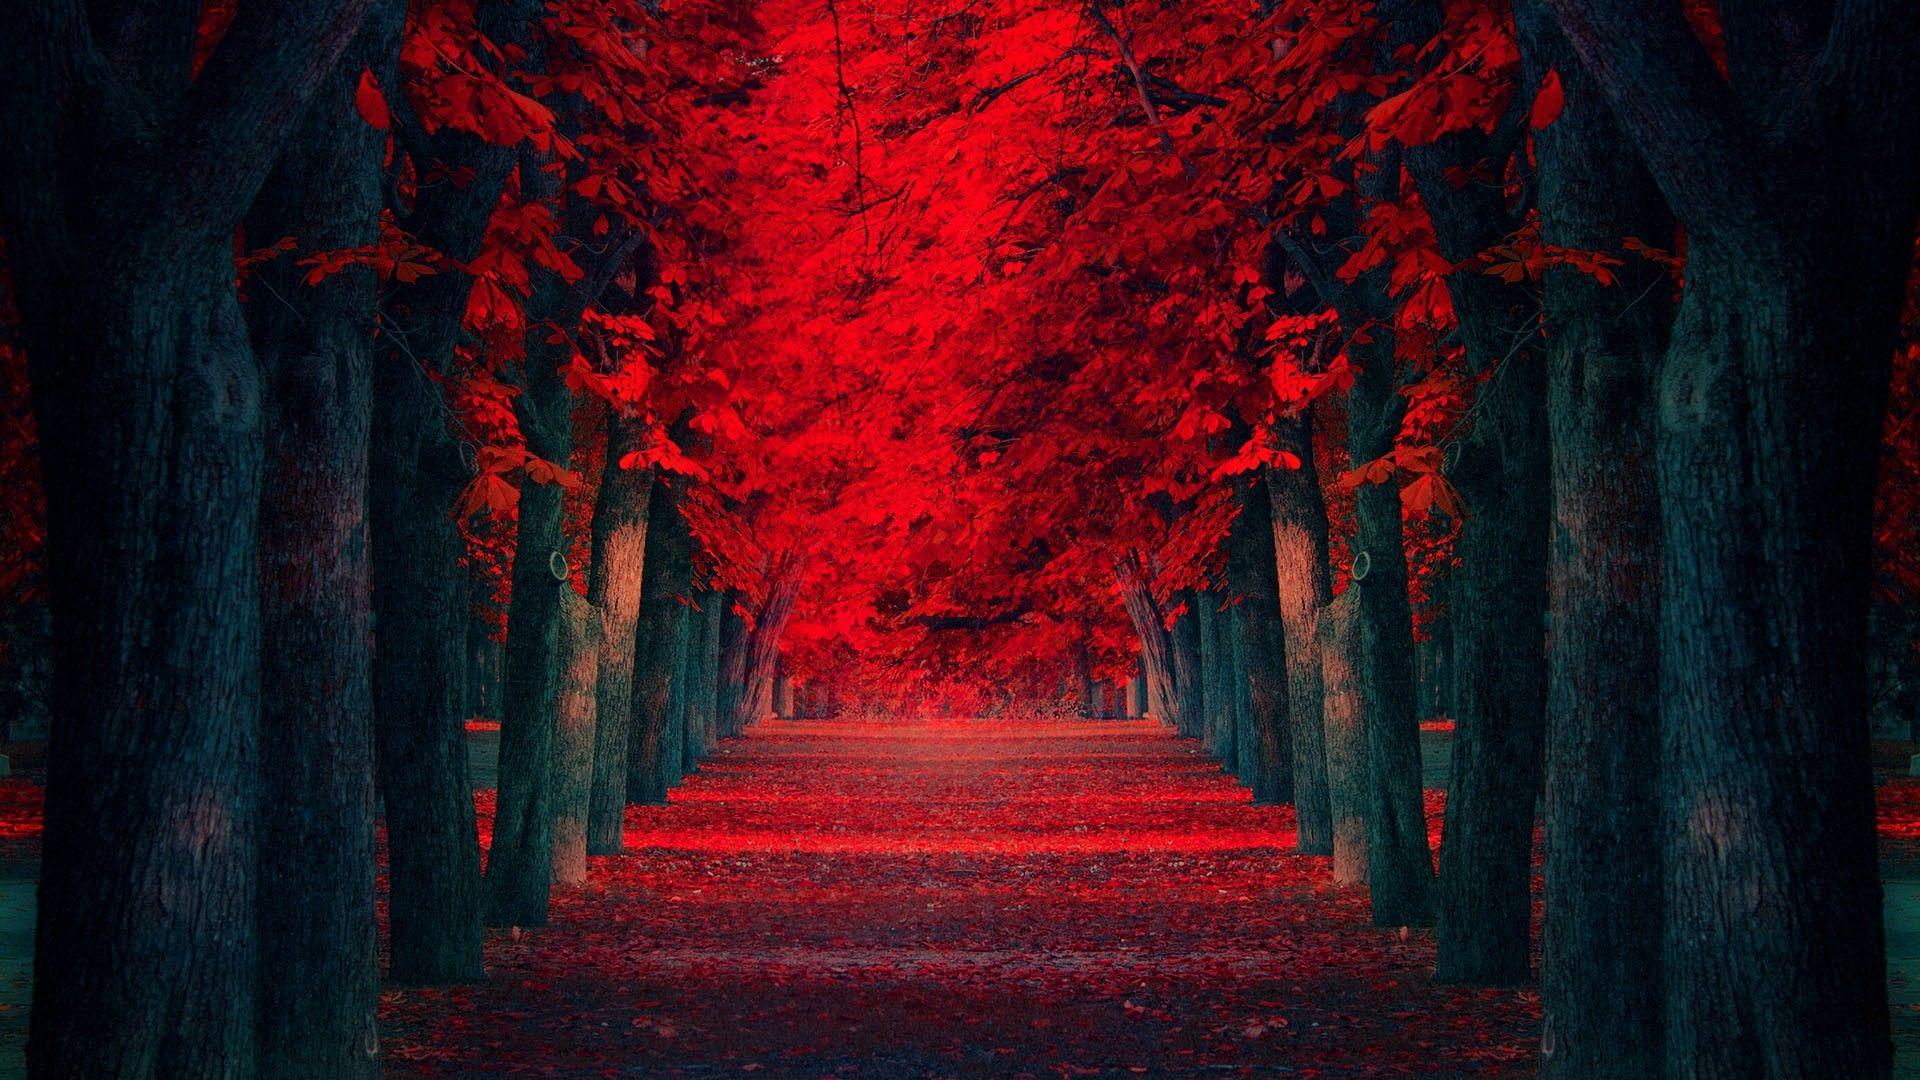 estrange_reality_redfall